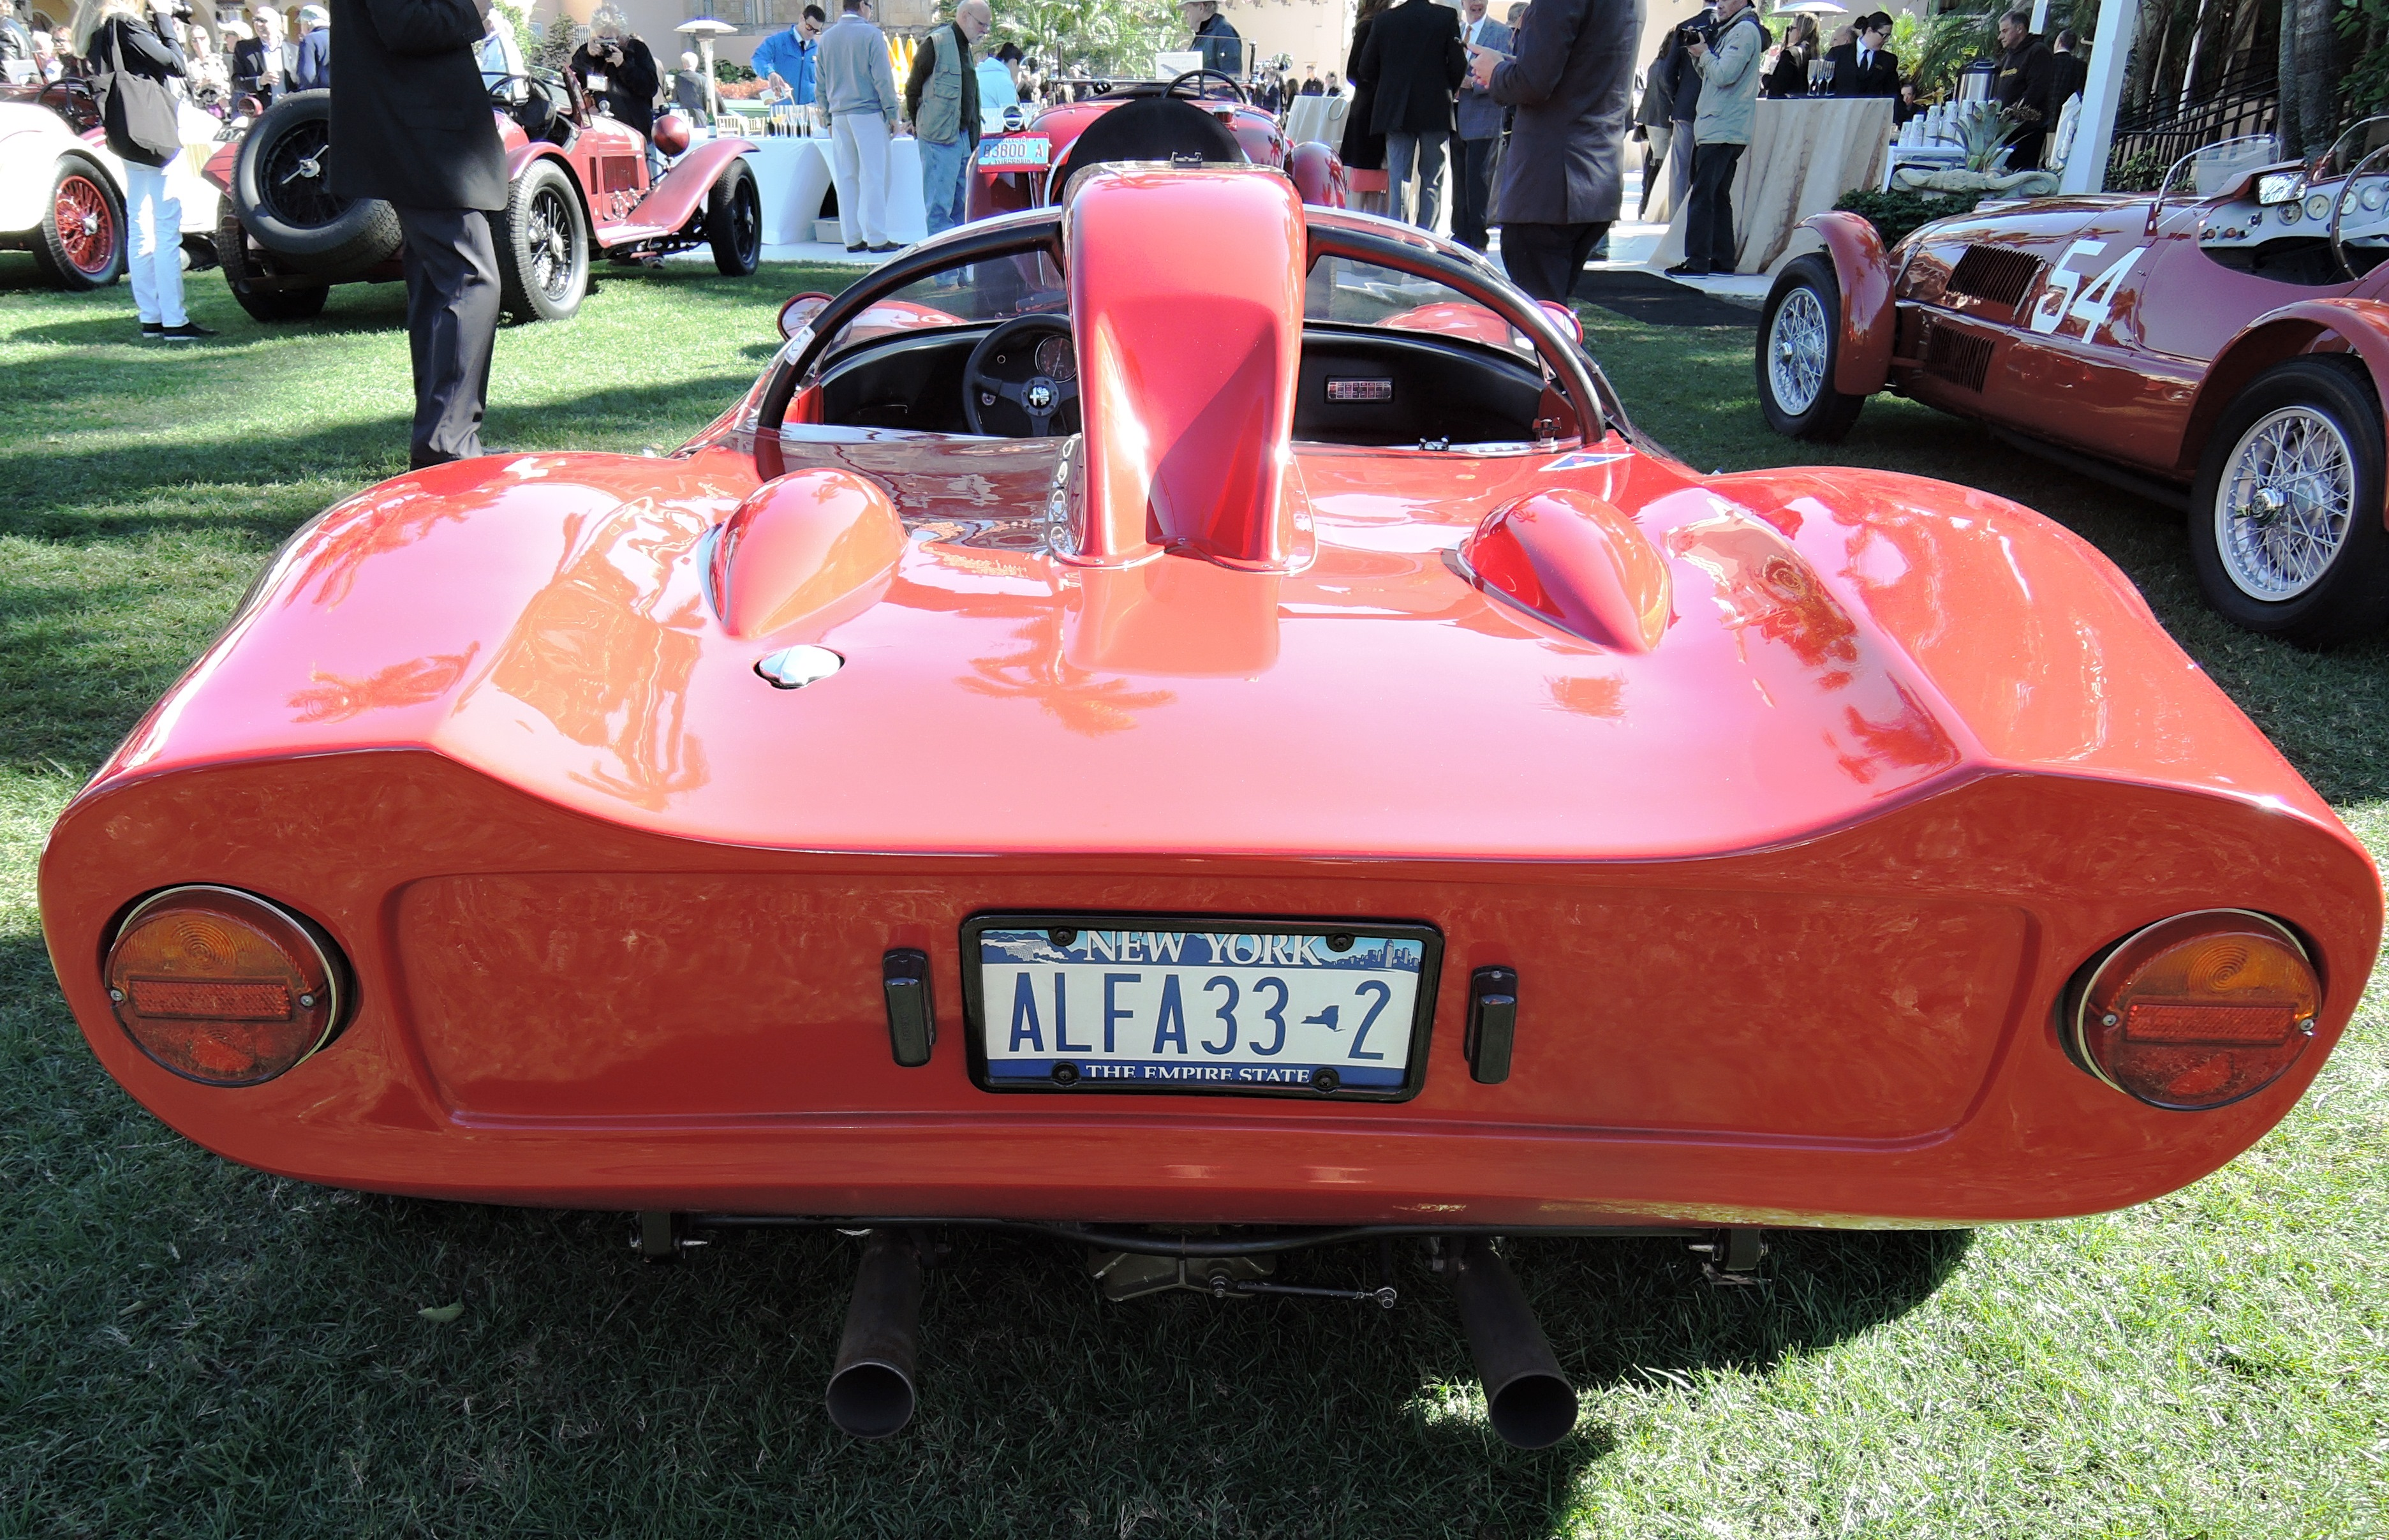 red 1967 Alfa Tipo 33 s/n 0004 - license plates